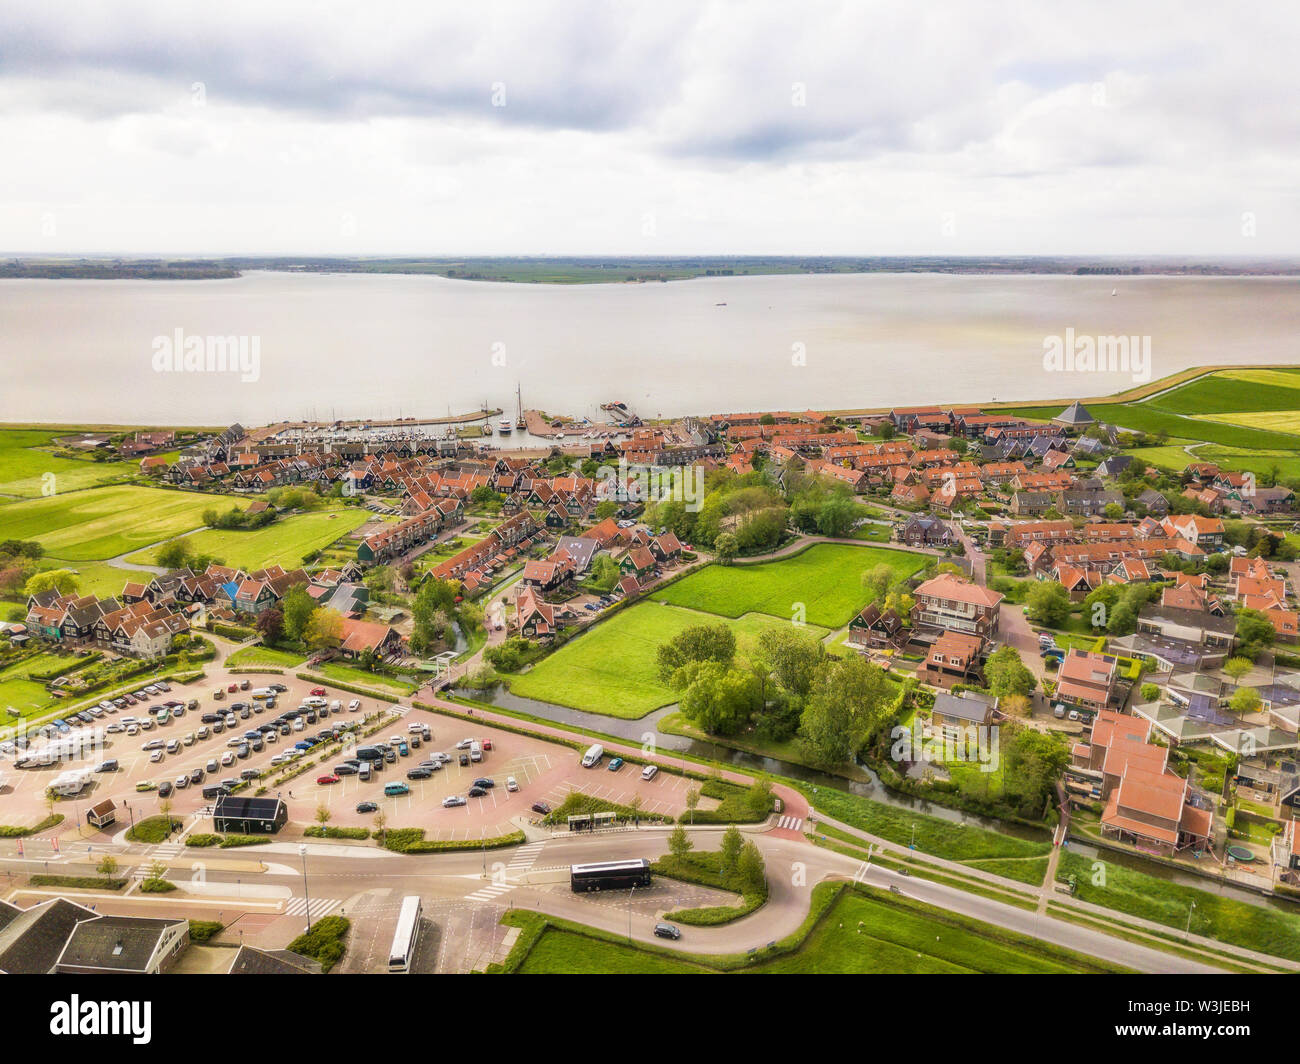 Aerial view of Marken, a small Dutch island in the Markermeer / Ijsselmeer on the North Sea coast. - Stock Image